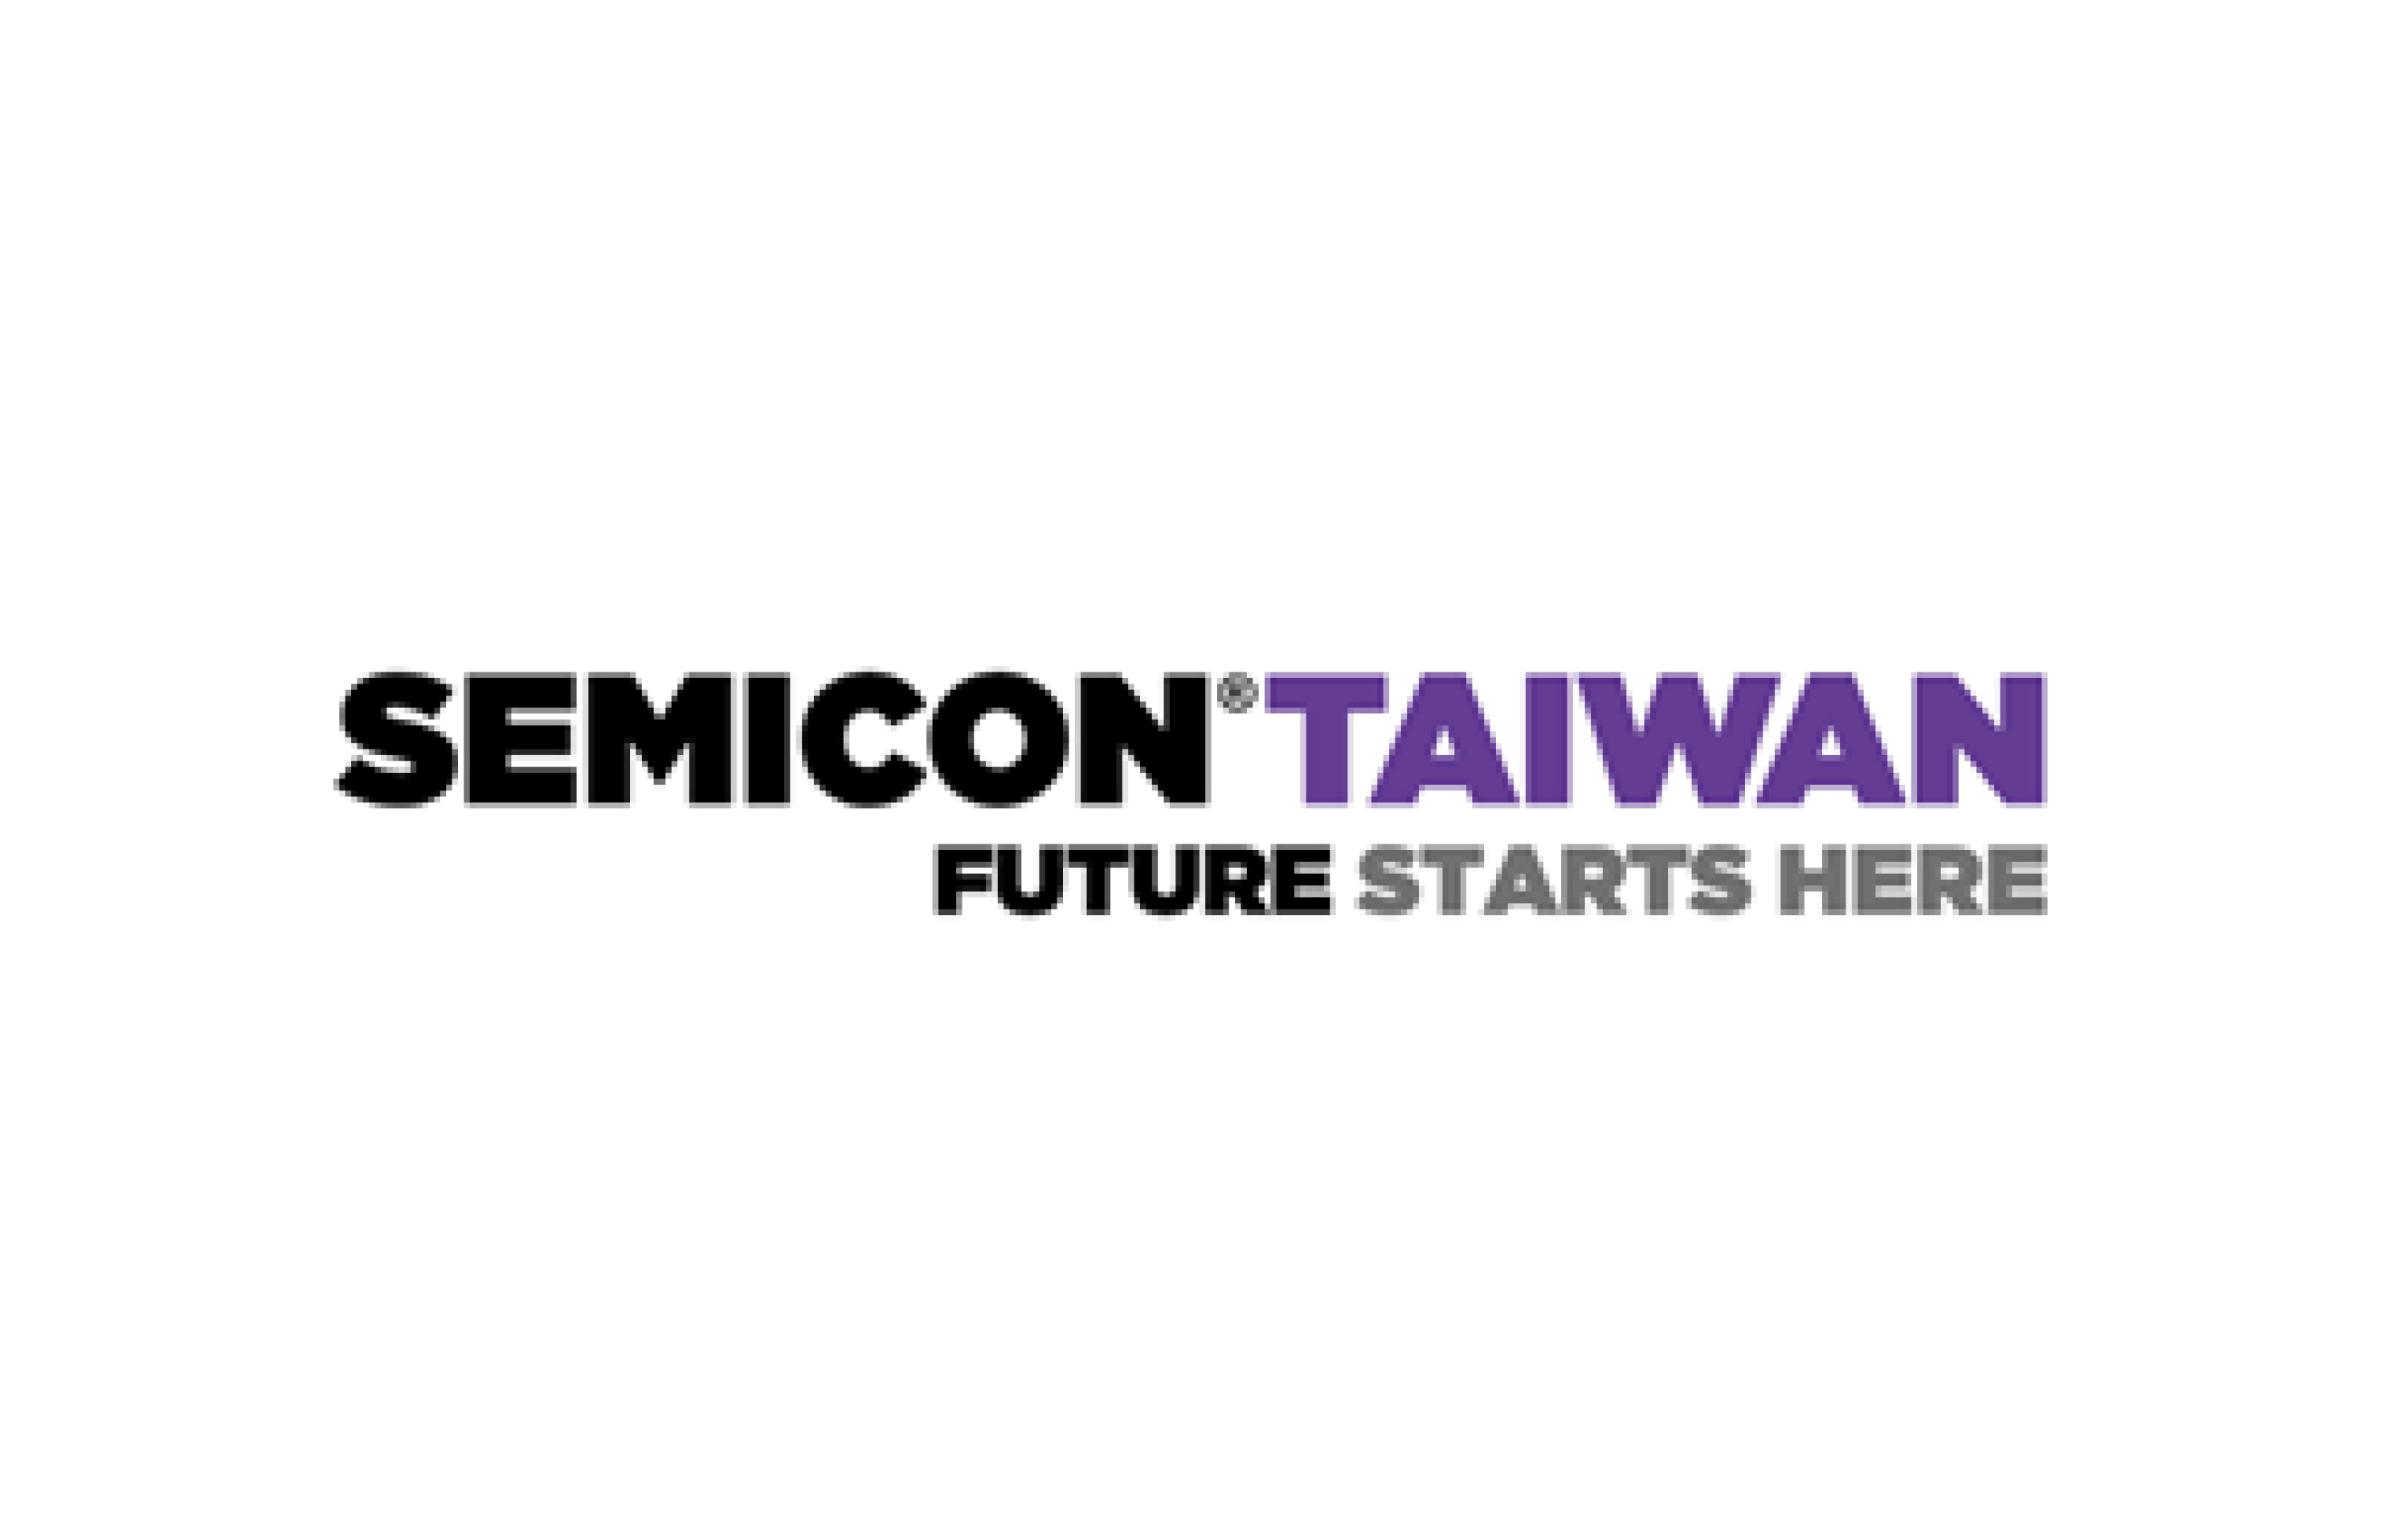 MPC will exhibit in Semicon Taiwan 2019. From 18 to 20 September 2019